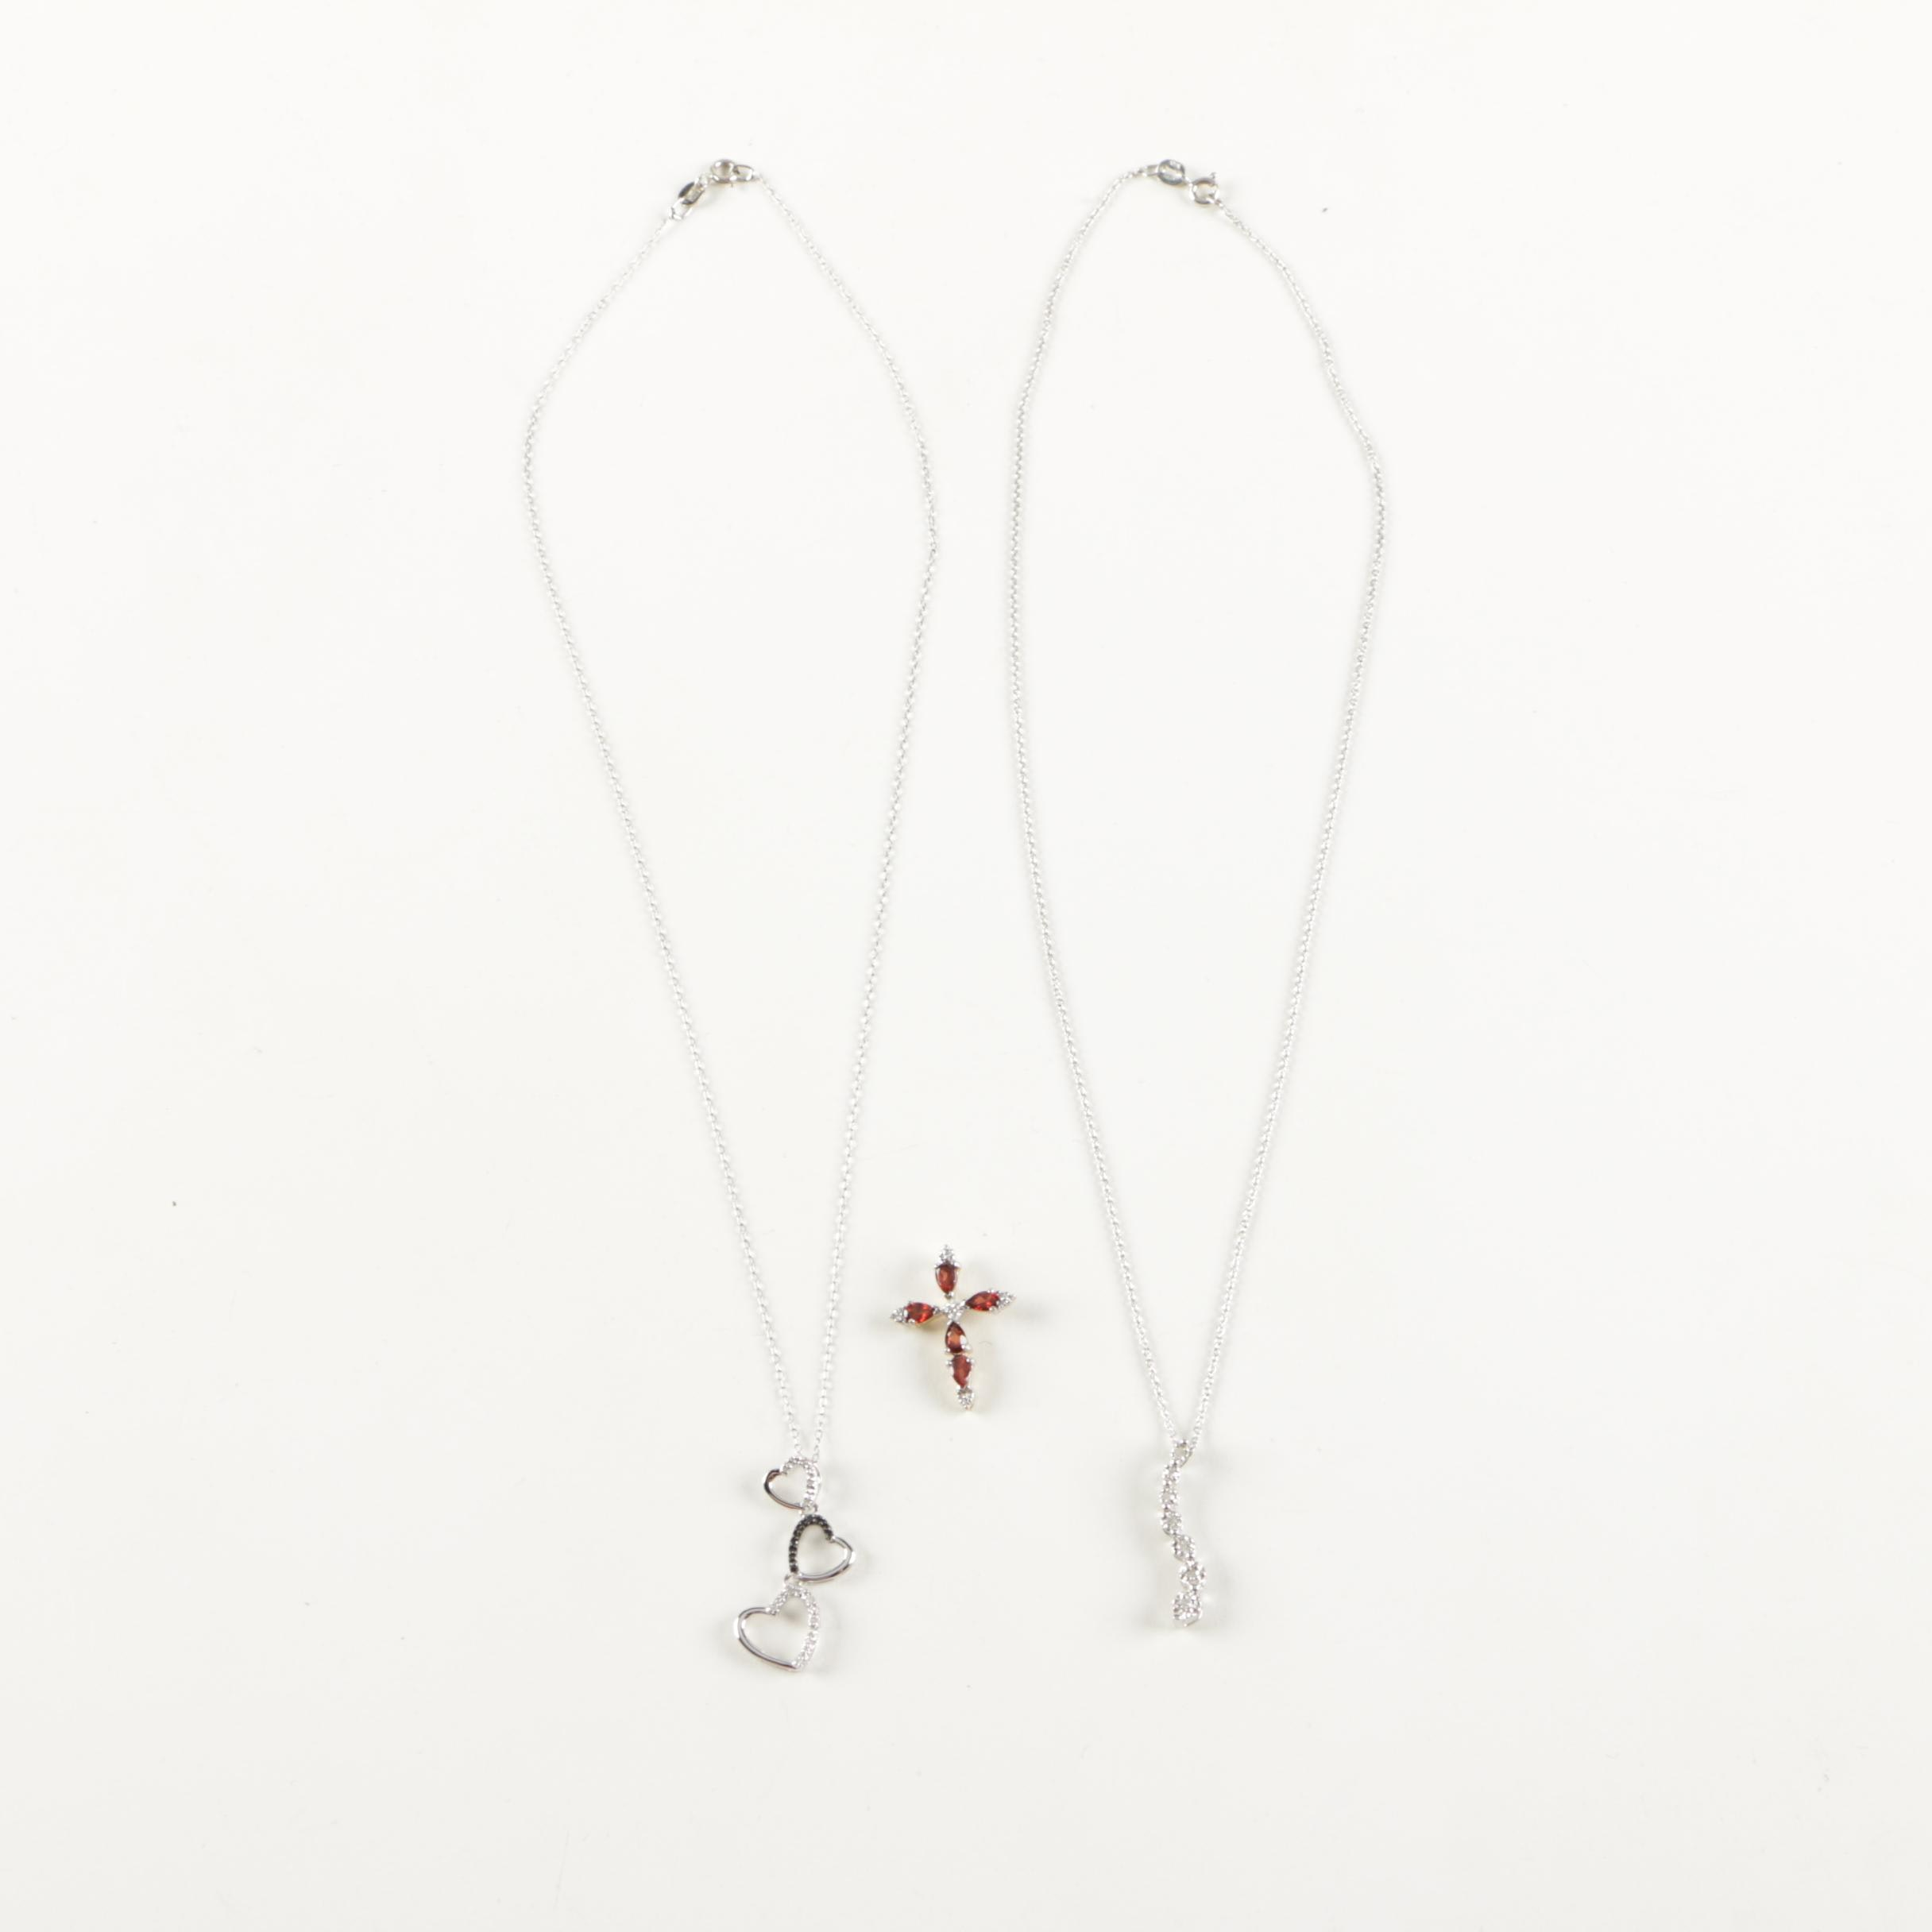 Sterling Silver Necklaces and Pendants